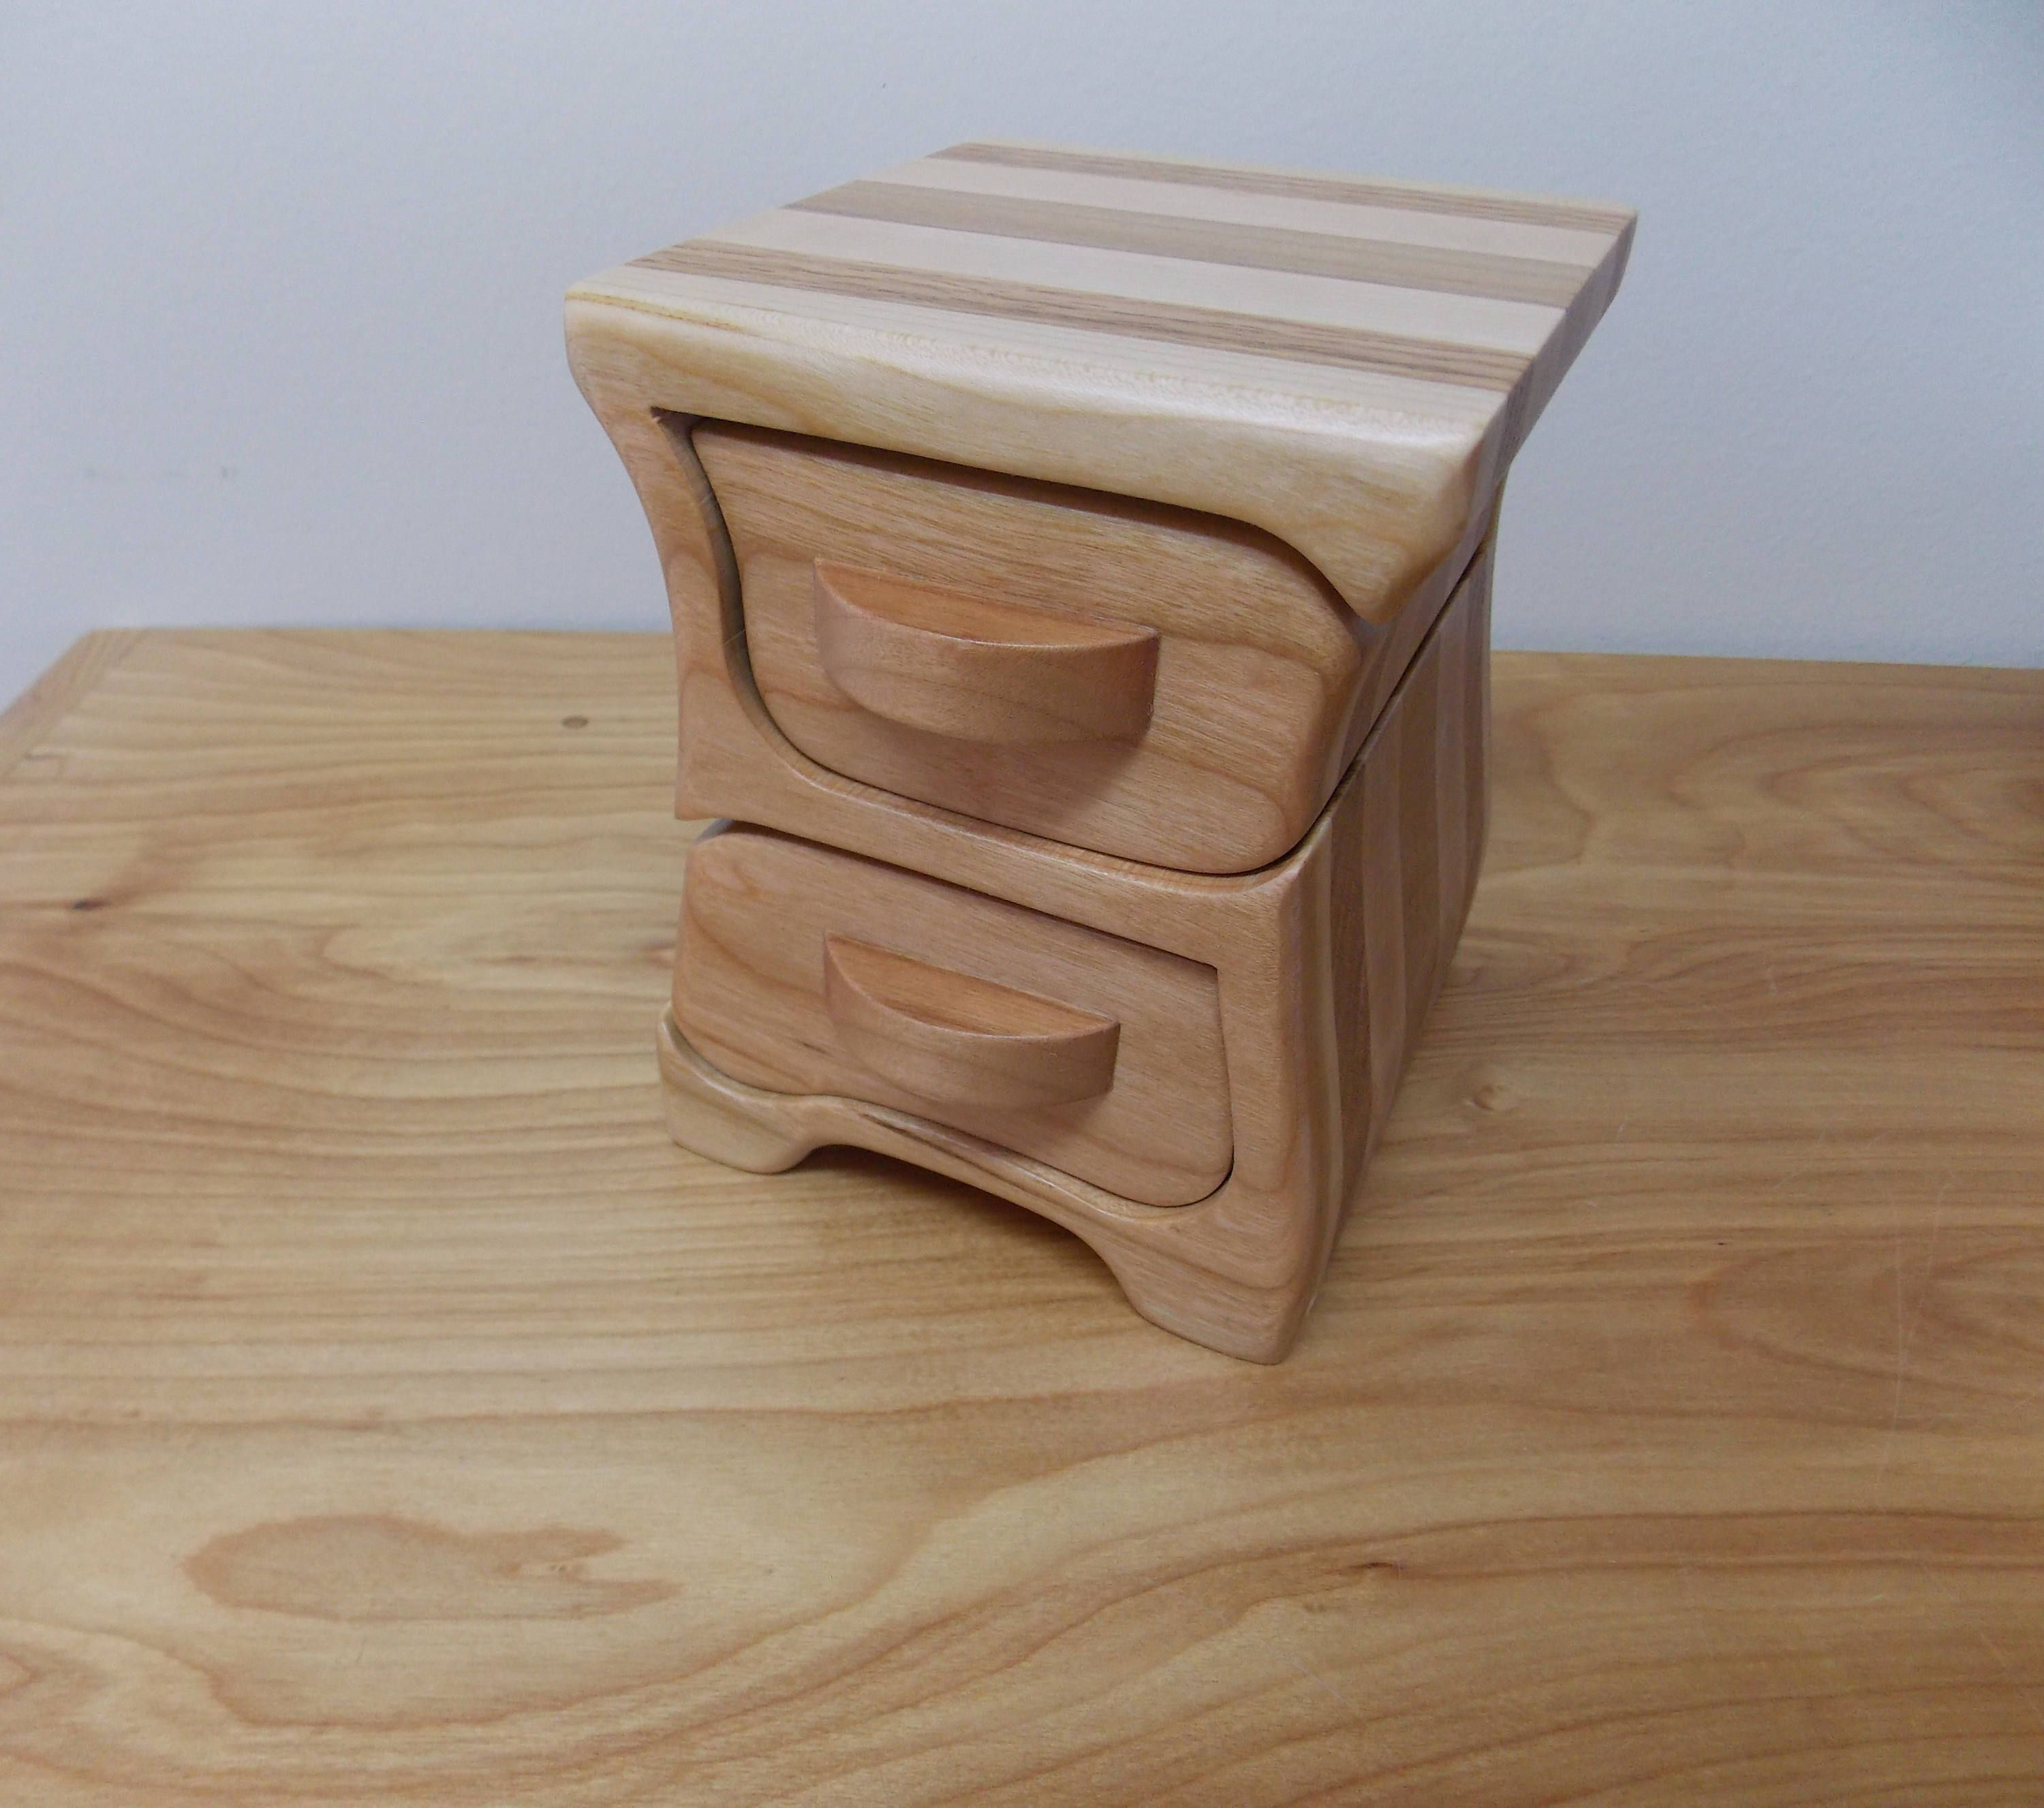 Small Jewelry Box Cherry Wood Jewelry Box Bandsaw Jewelry Box Key